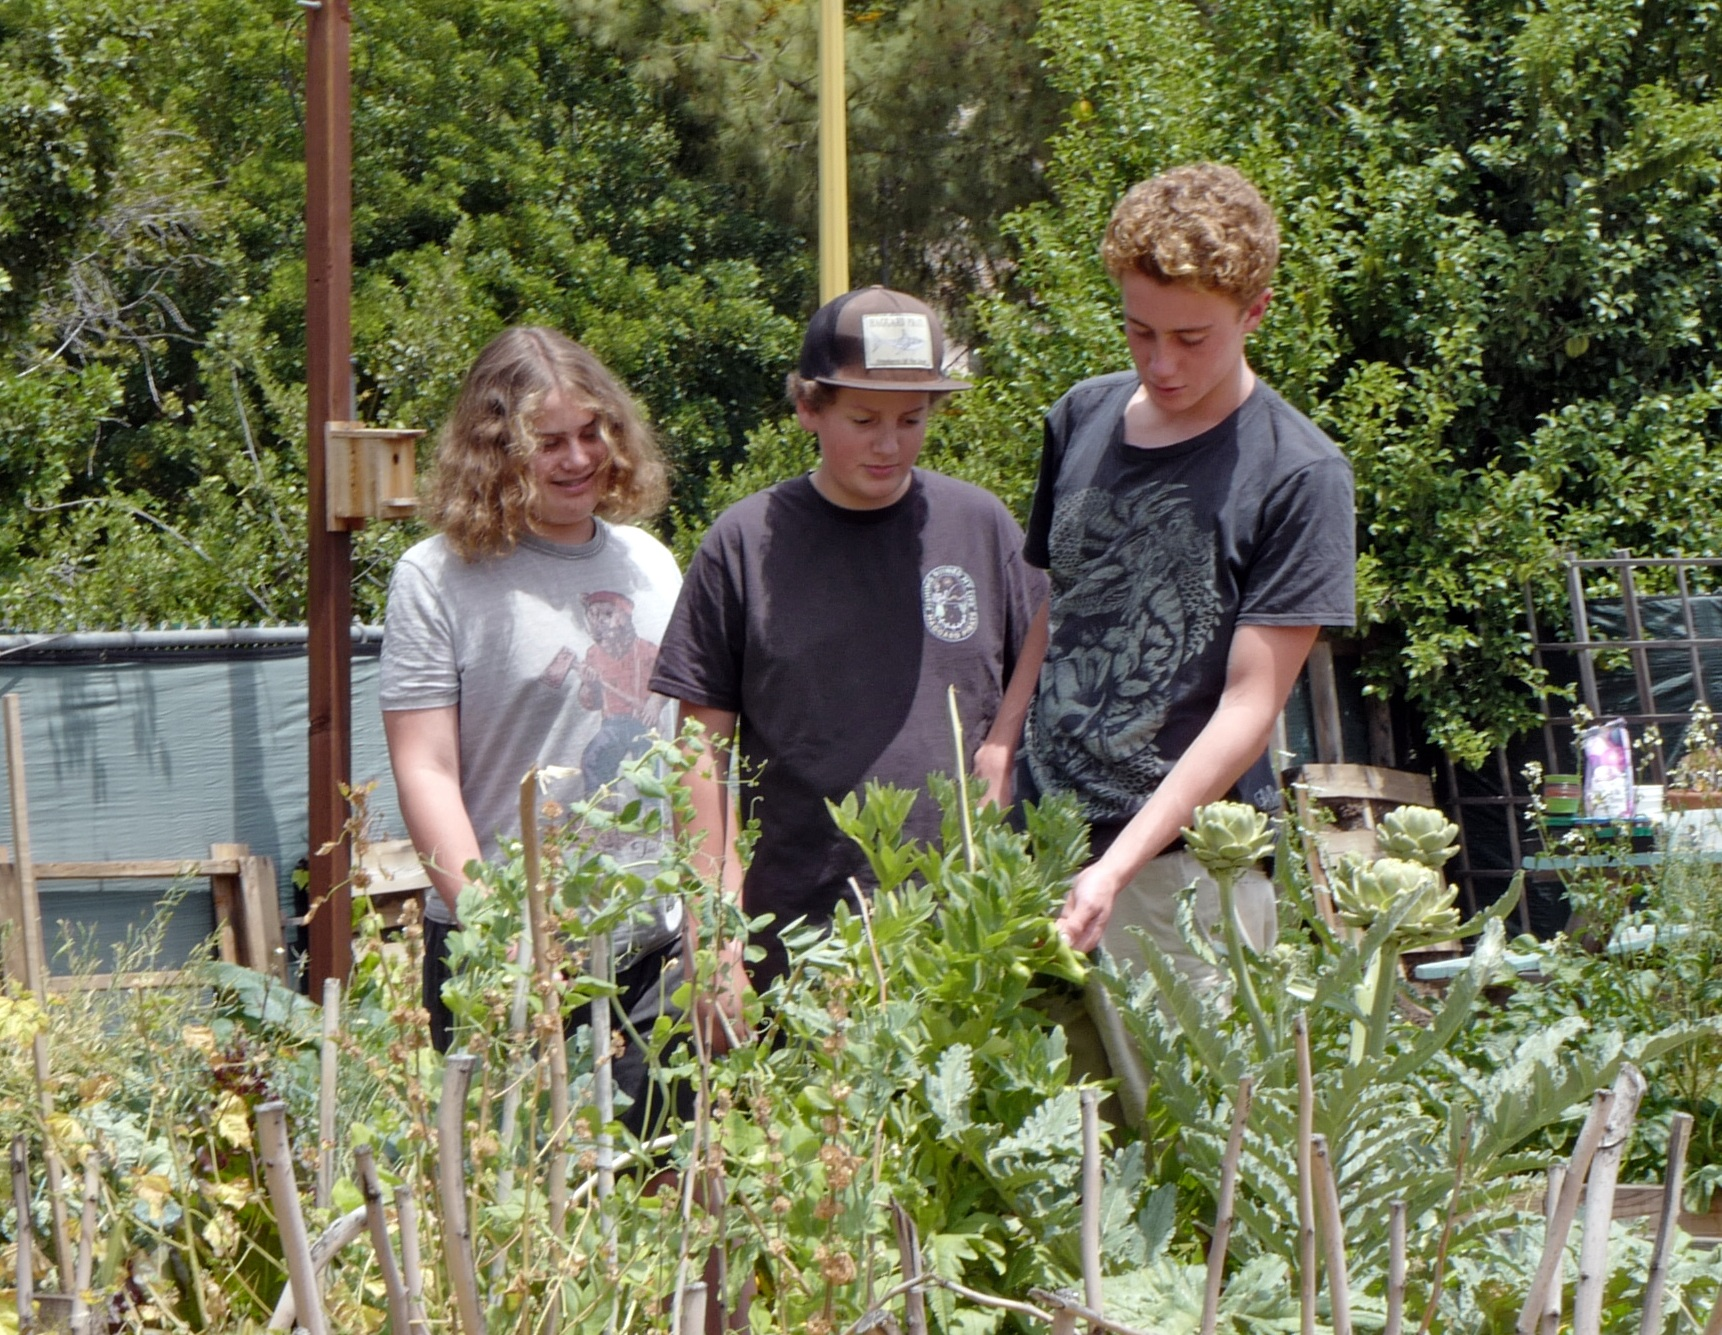 Student work the garden and harvest, cooking meals with their bounty.